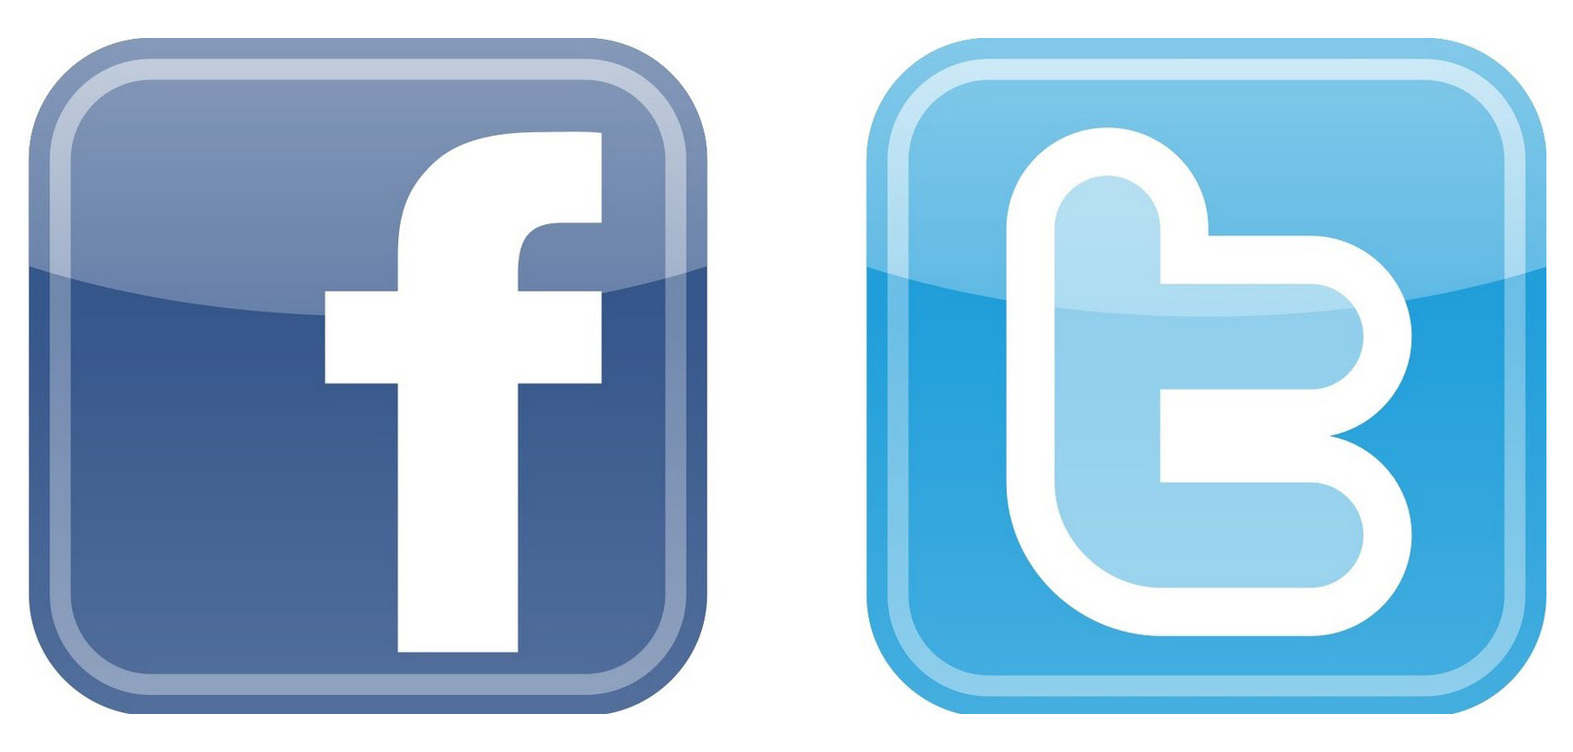 Facebook Free Clipart